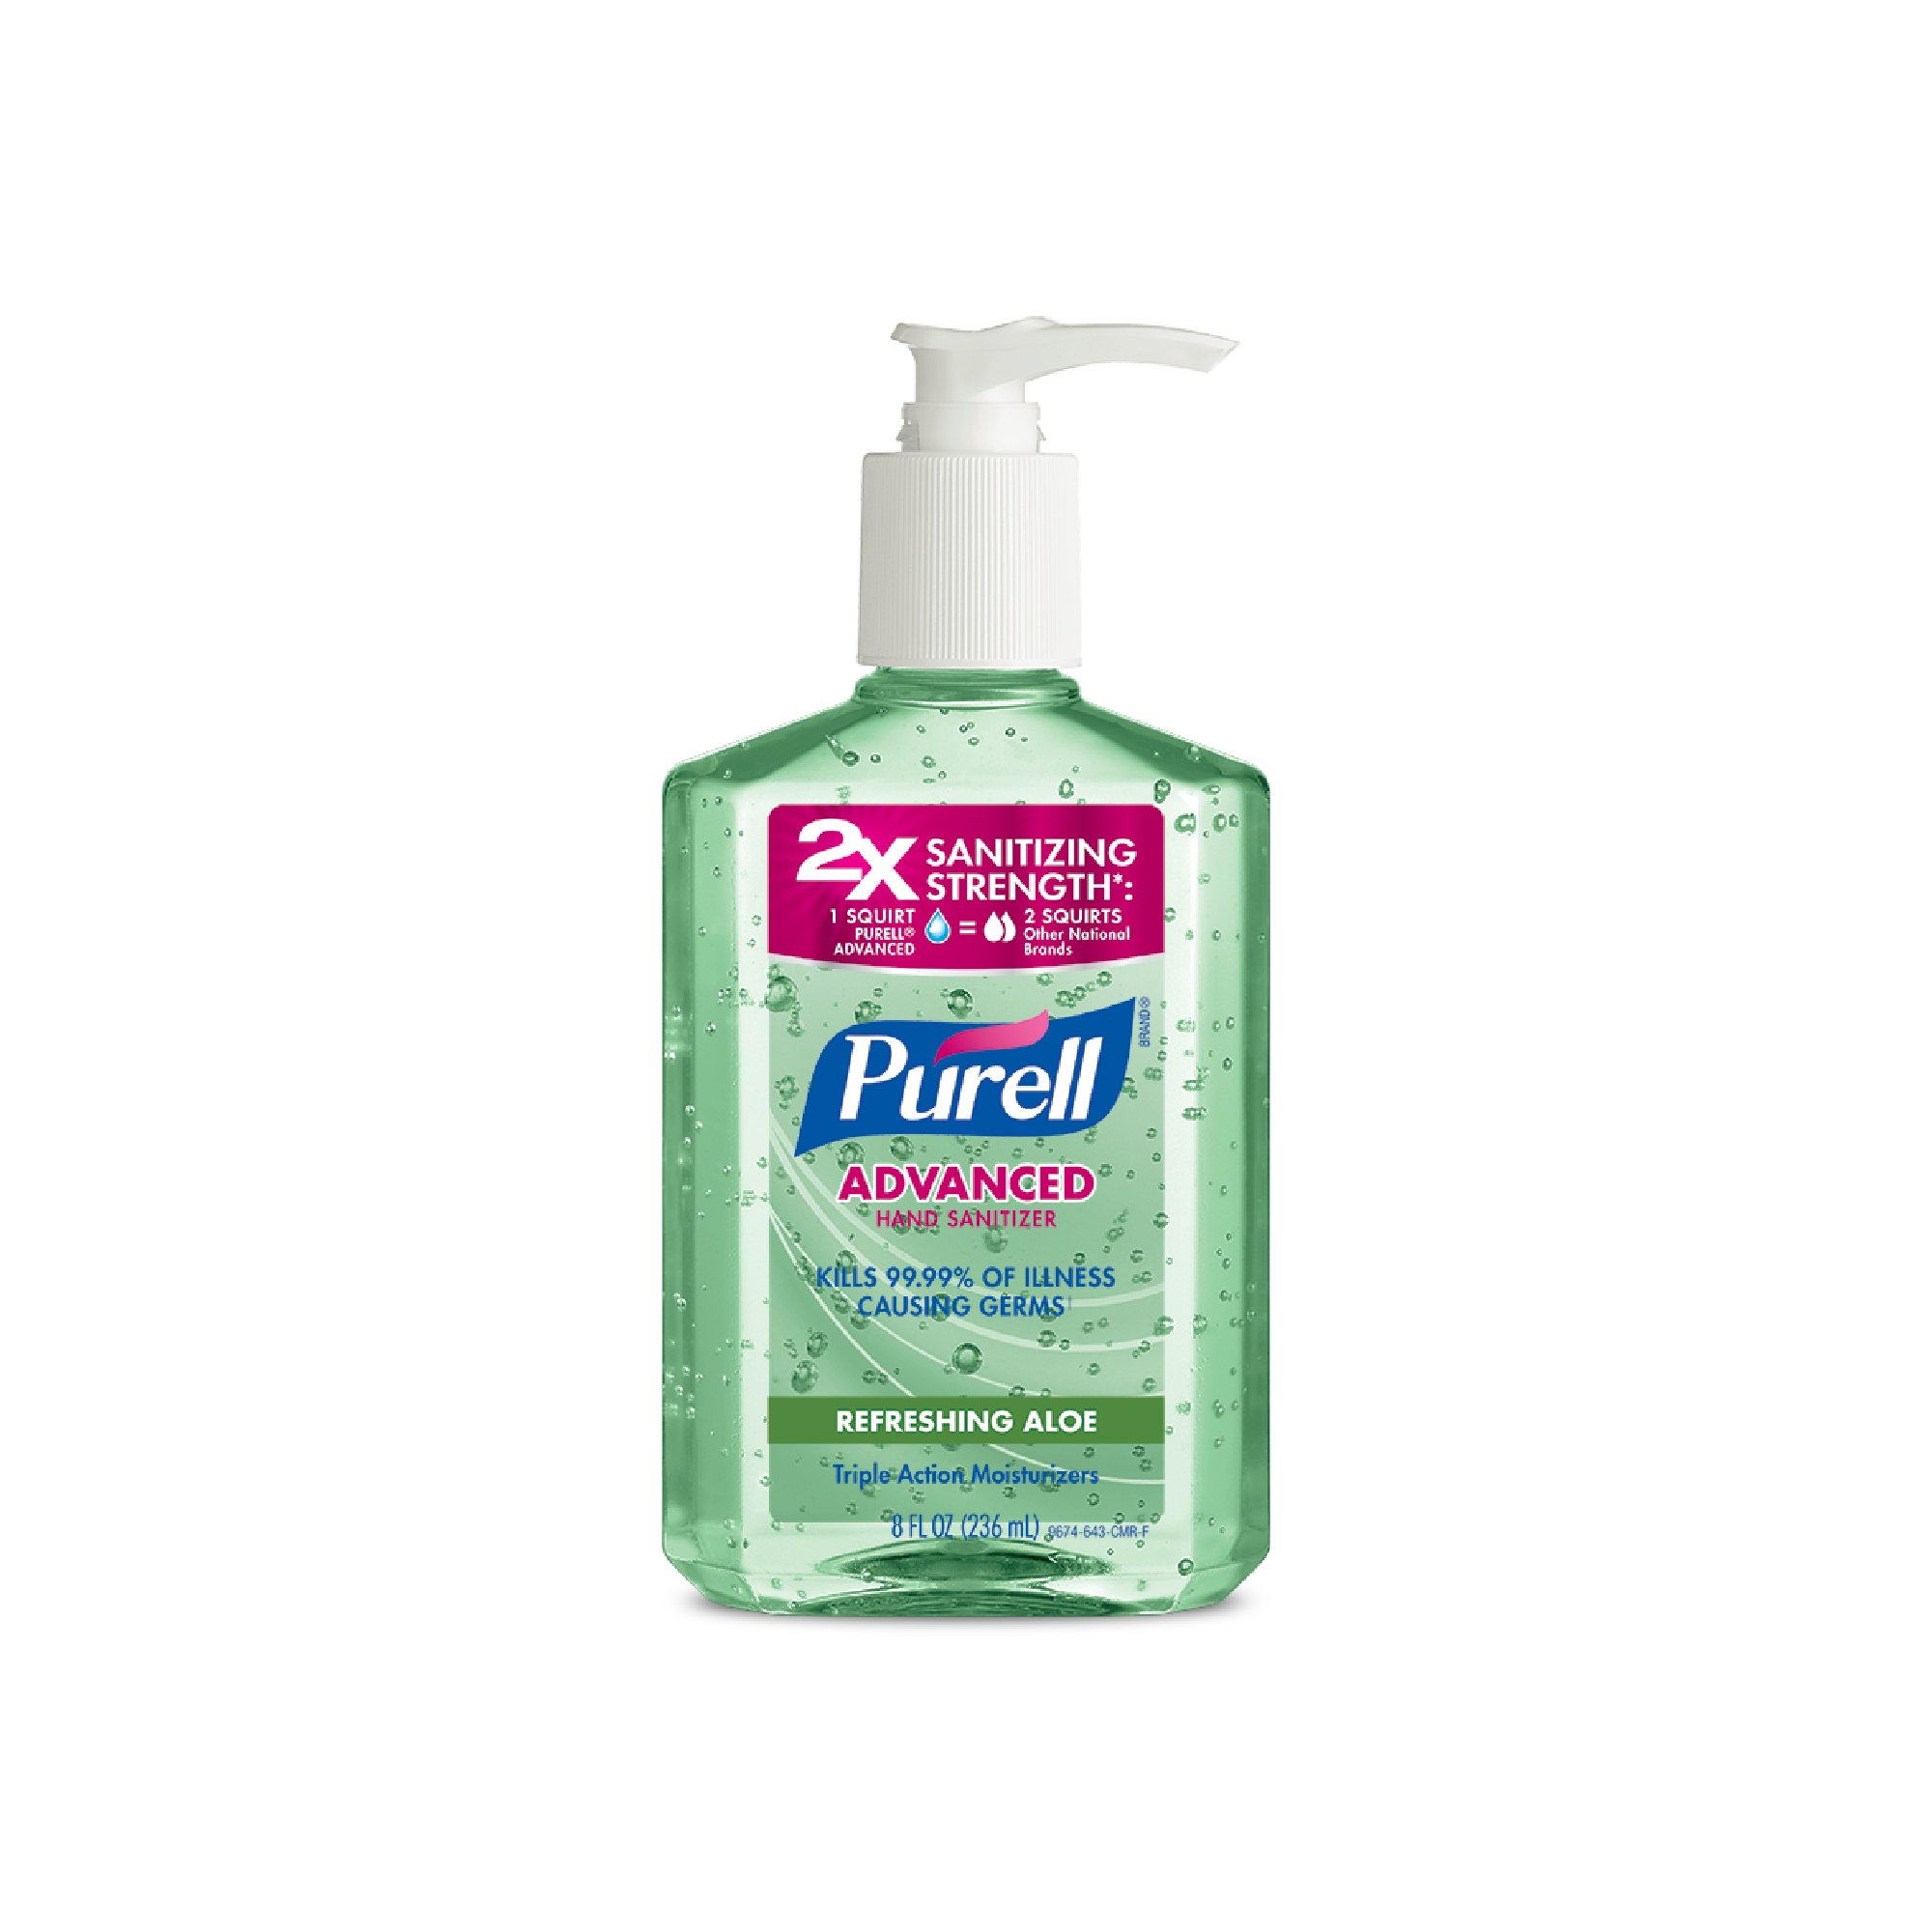 PURELL Advanced Hand Sanitizer with Aloe - Hand Sanitizer Gel 8 fl oz Table Top Pump Bottle (Pack of 2) - 9674-06-EC2PK by Purell (Image #1)